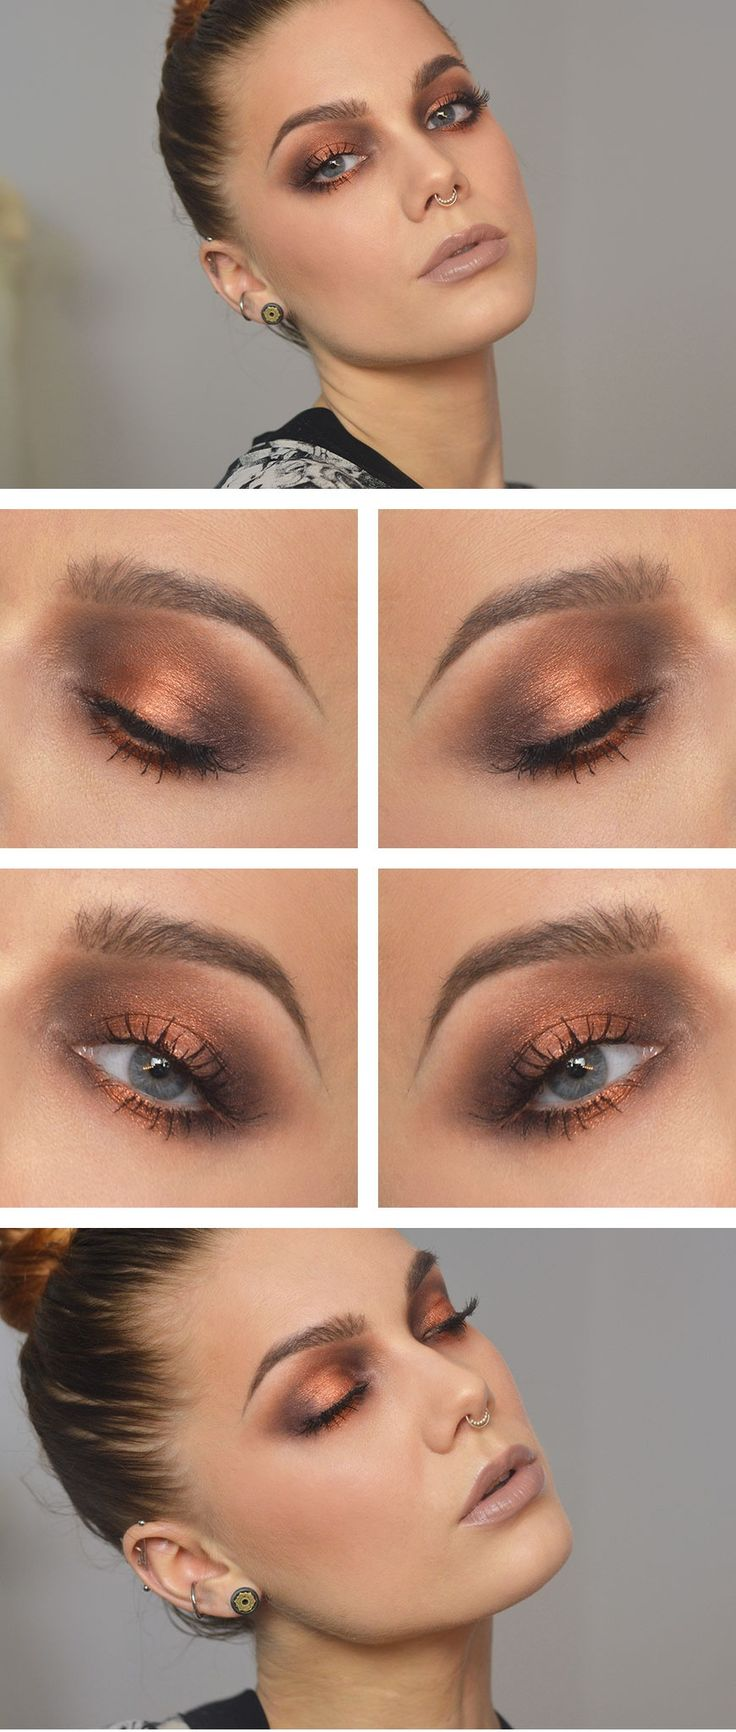 The best images about makeup on pinterest